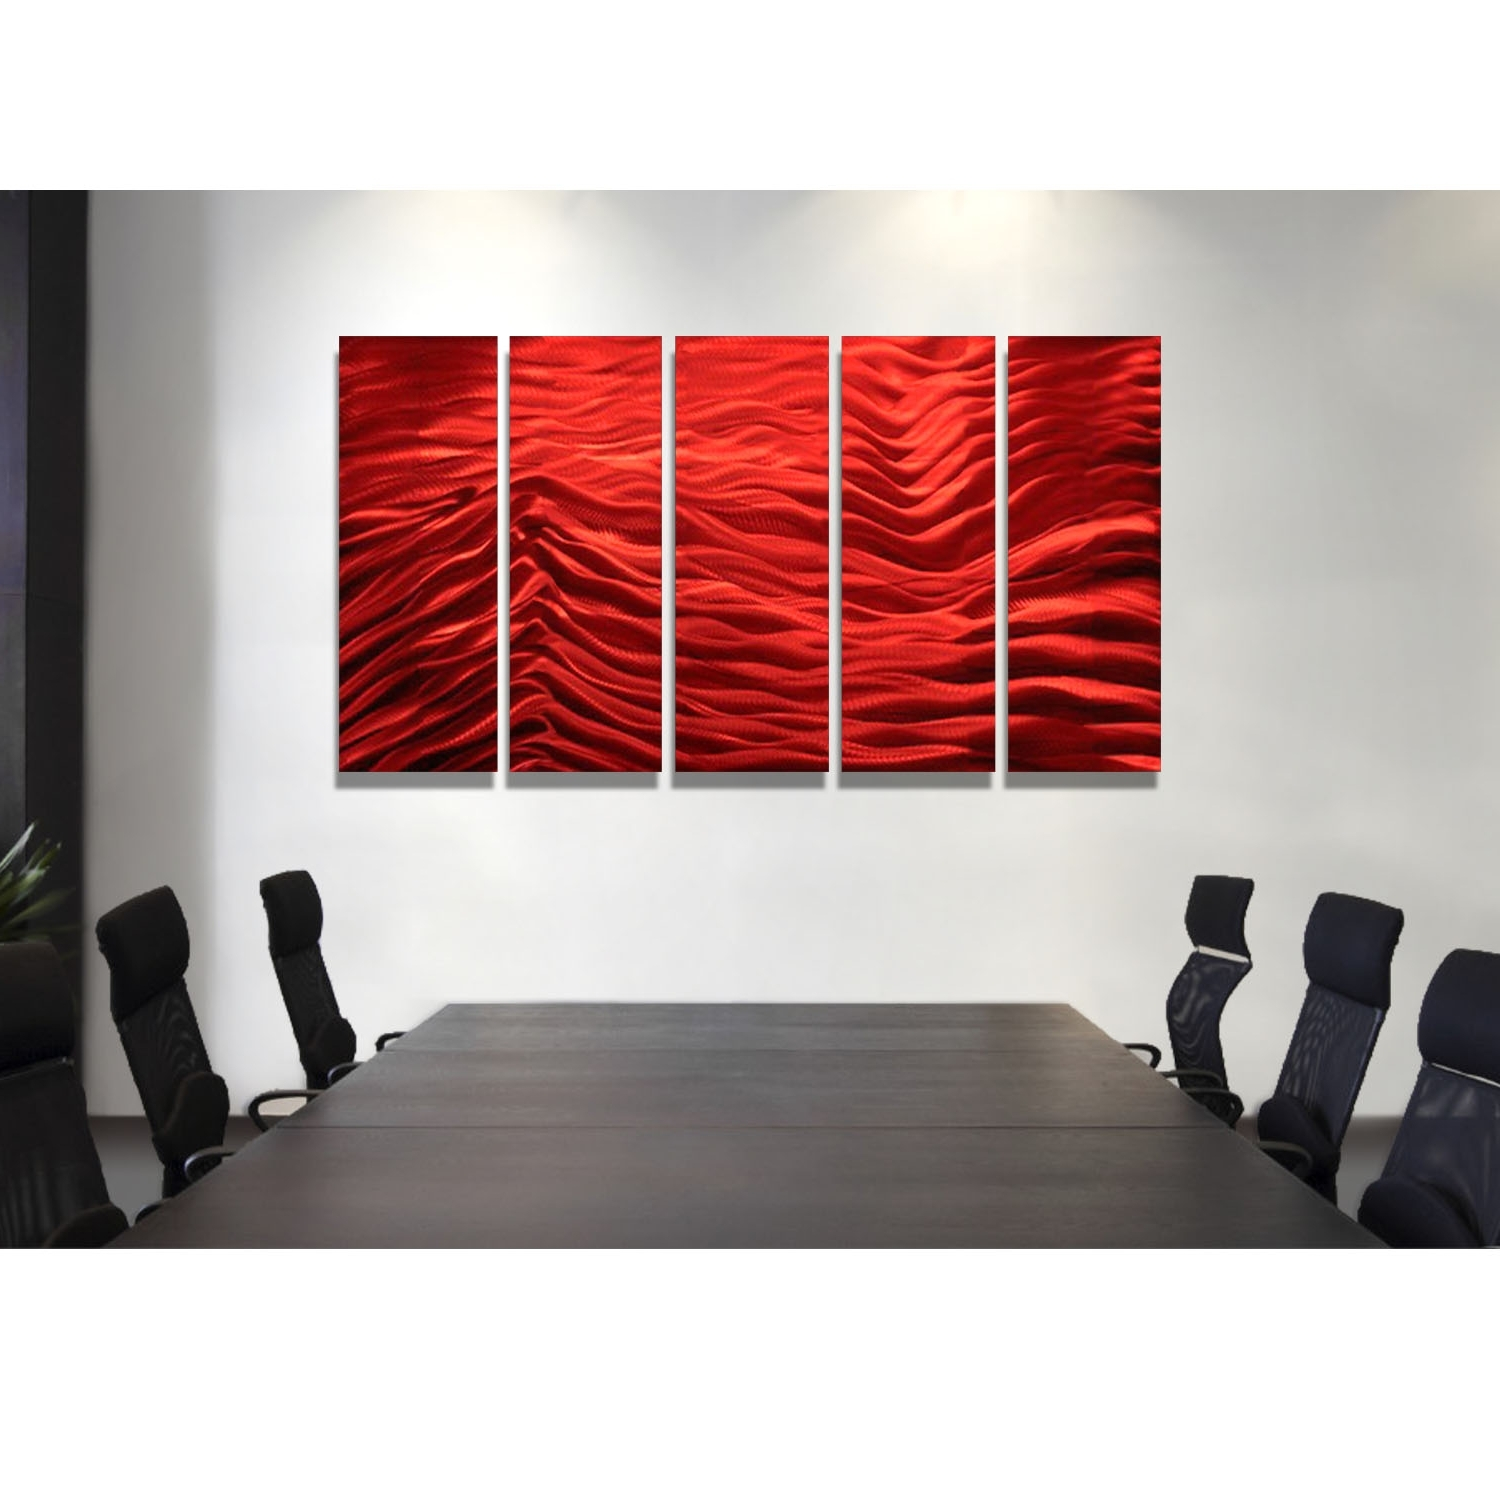 Red Inertia – Red Metal Wall Art – 5 Panel Wall Décorjon Allen Inside 2018 Panel Wall Art (View 15 of 20)